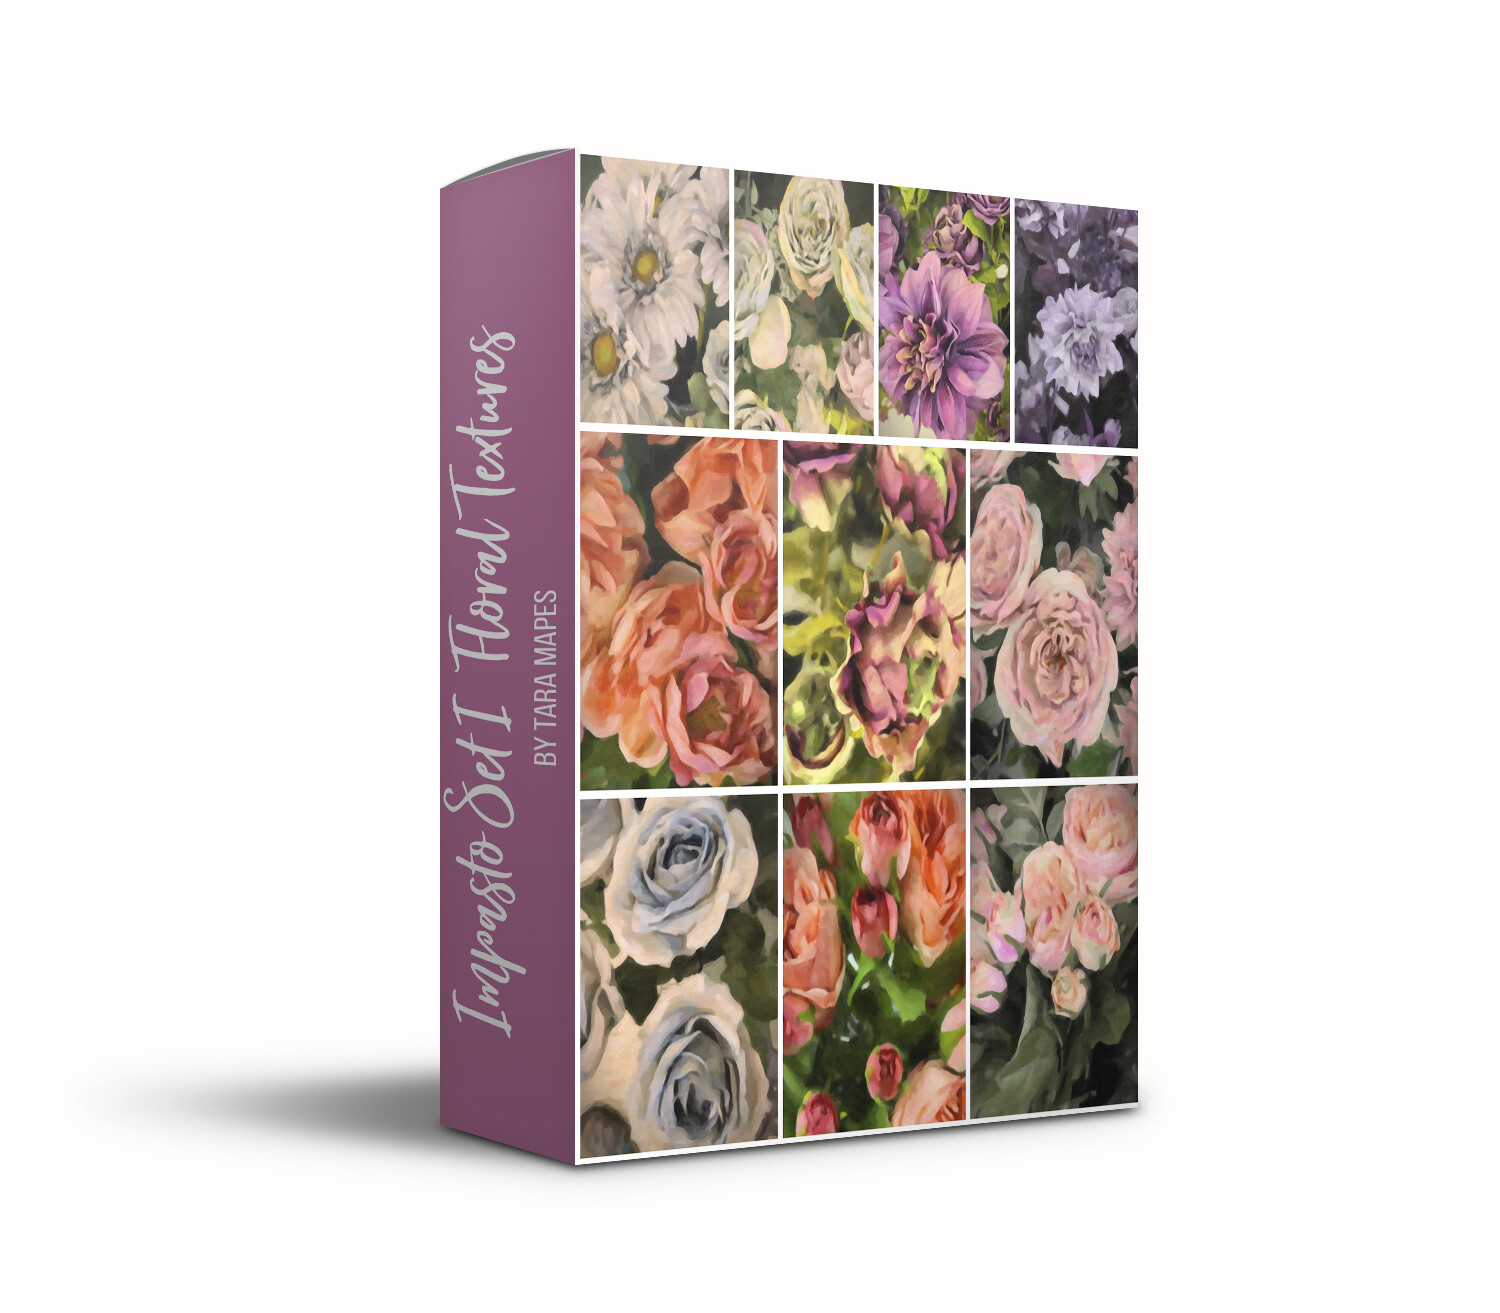 Impasto Set I Floral Collection Fine Art Texture Overlays - 10 Digital Painted Floral Textures -  Photoshop Overlays by Tara Mapes